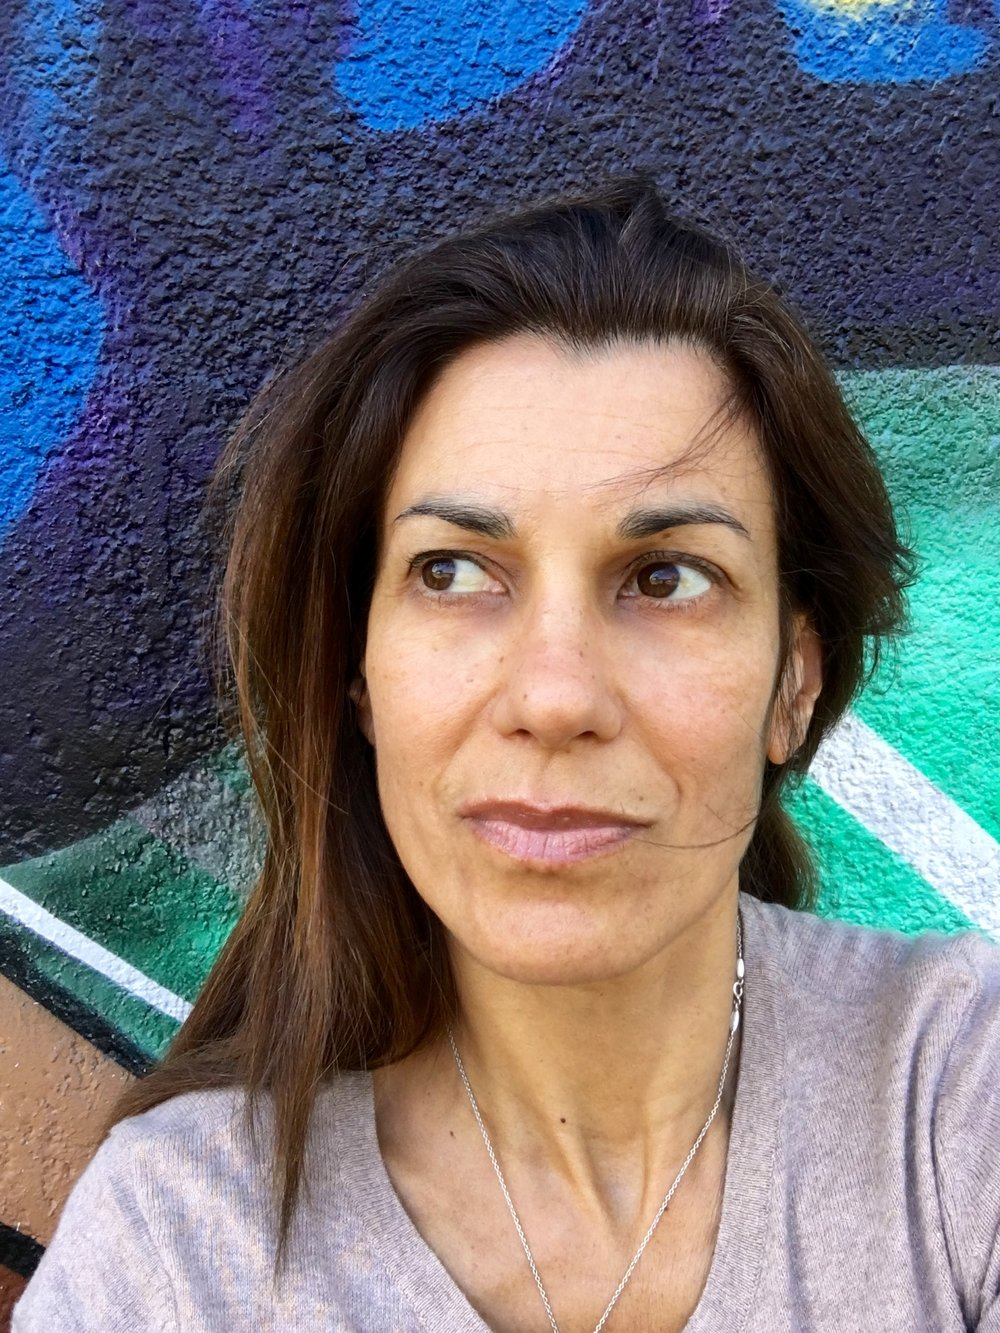 "Cassia Bundock is a contemporary artist and curator working from Bayview.Cassia was born in May 2, 1963 in a bohemian central district of São Paulo called Bixiga where she was raised. She played the piano from the age of 7 up to her teenage years. She has practiced and has followed contemporary dance from early age. She started to paint in 1992 and had her first group show in 1997 at a bar in the sophisticated neighbourhood of Jardins.Cassia came to live in Australia in 2000. She studied at the UNSW Art & Design and has curated four exhibitions in Sydney: Into Africa, 2002, Lace in Alagoas- a nexus of art, sea and women, 2016; interfluxo, 2017 and Invisible Bridges, 2018.Cassia's practice circulates in the sphere of the hybrid. She blends the aesthetic and the poetry of her European/Indigenous Brazilian background with her contemporary life as a diaspora. Her work tends to carry spirituality, history and semiotics framed with elements of the Baroque and the Modernism particularly the Brazilian Neo- Concretism, Dada and Primitivism.""I always found art powerful. I am interested in the kind of power that art holds that can change everything"" -"